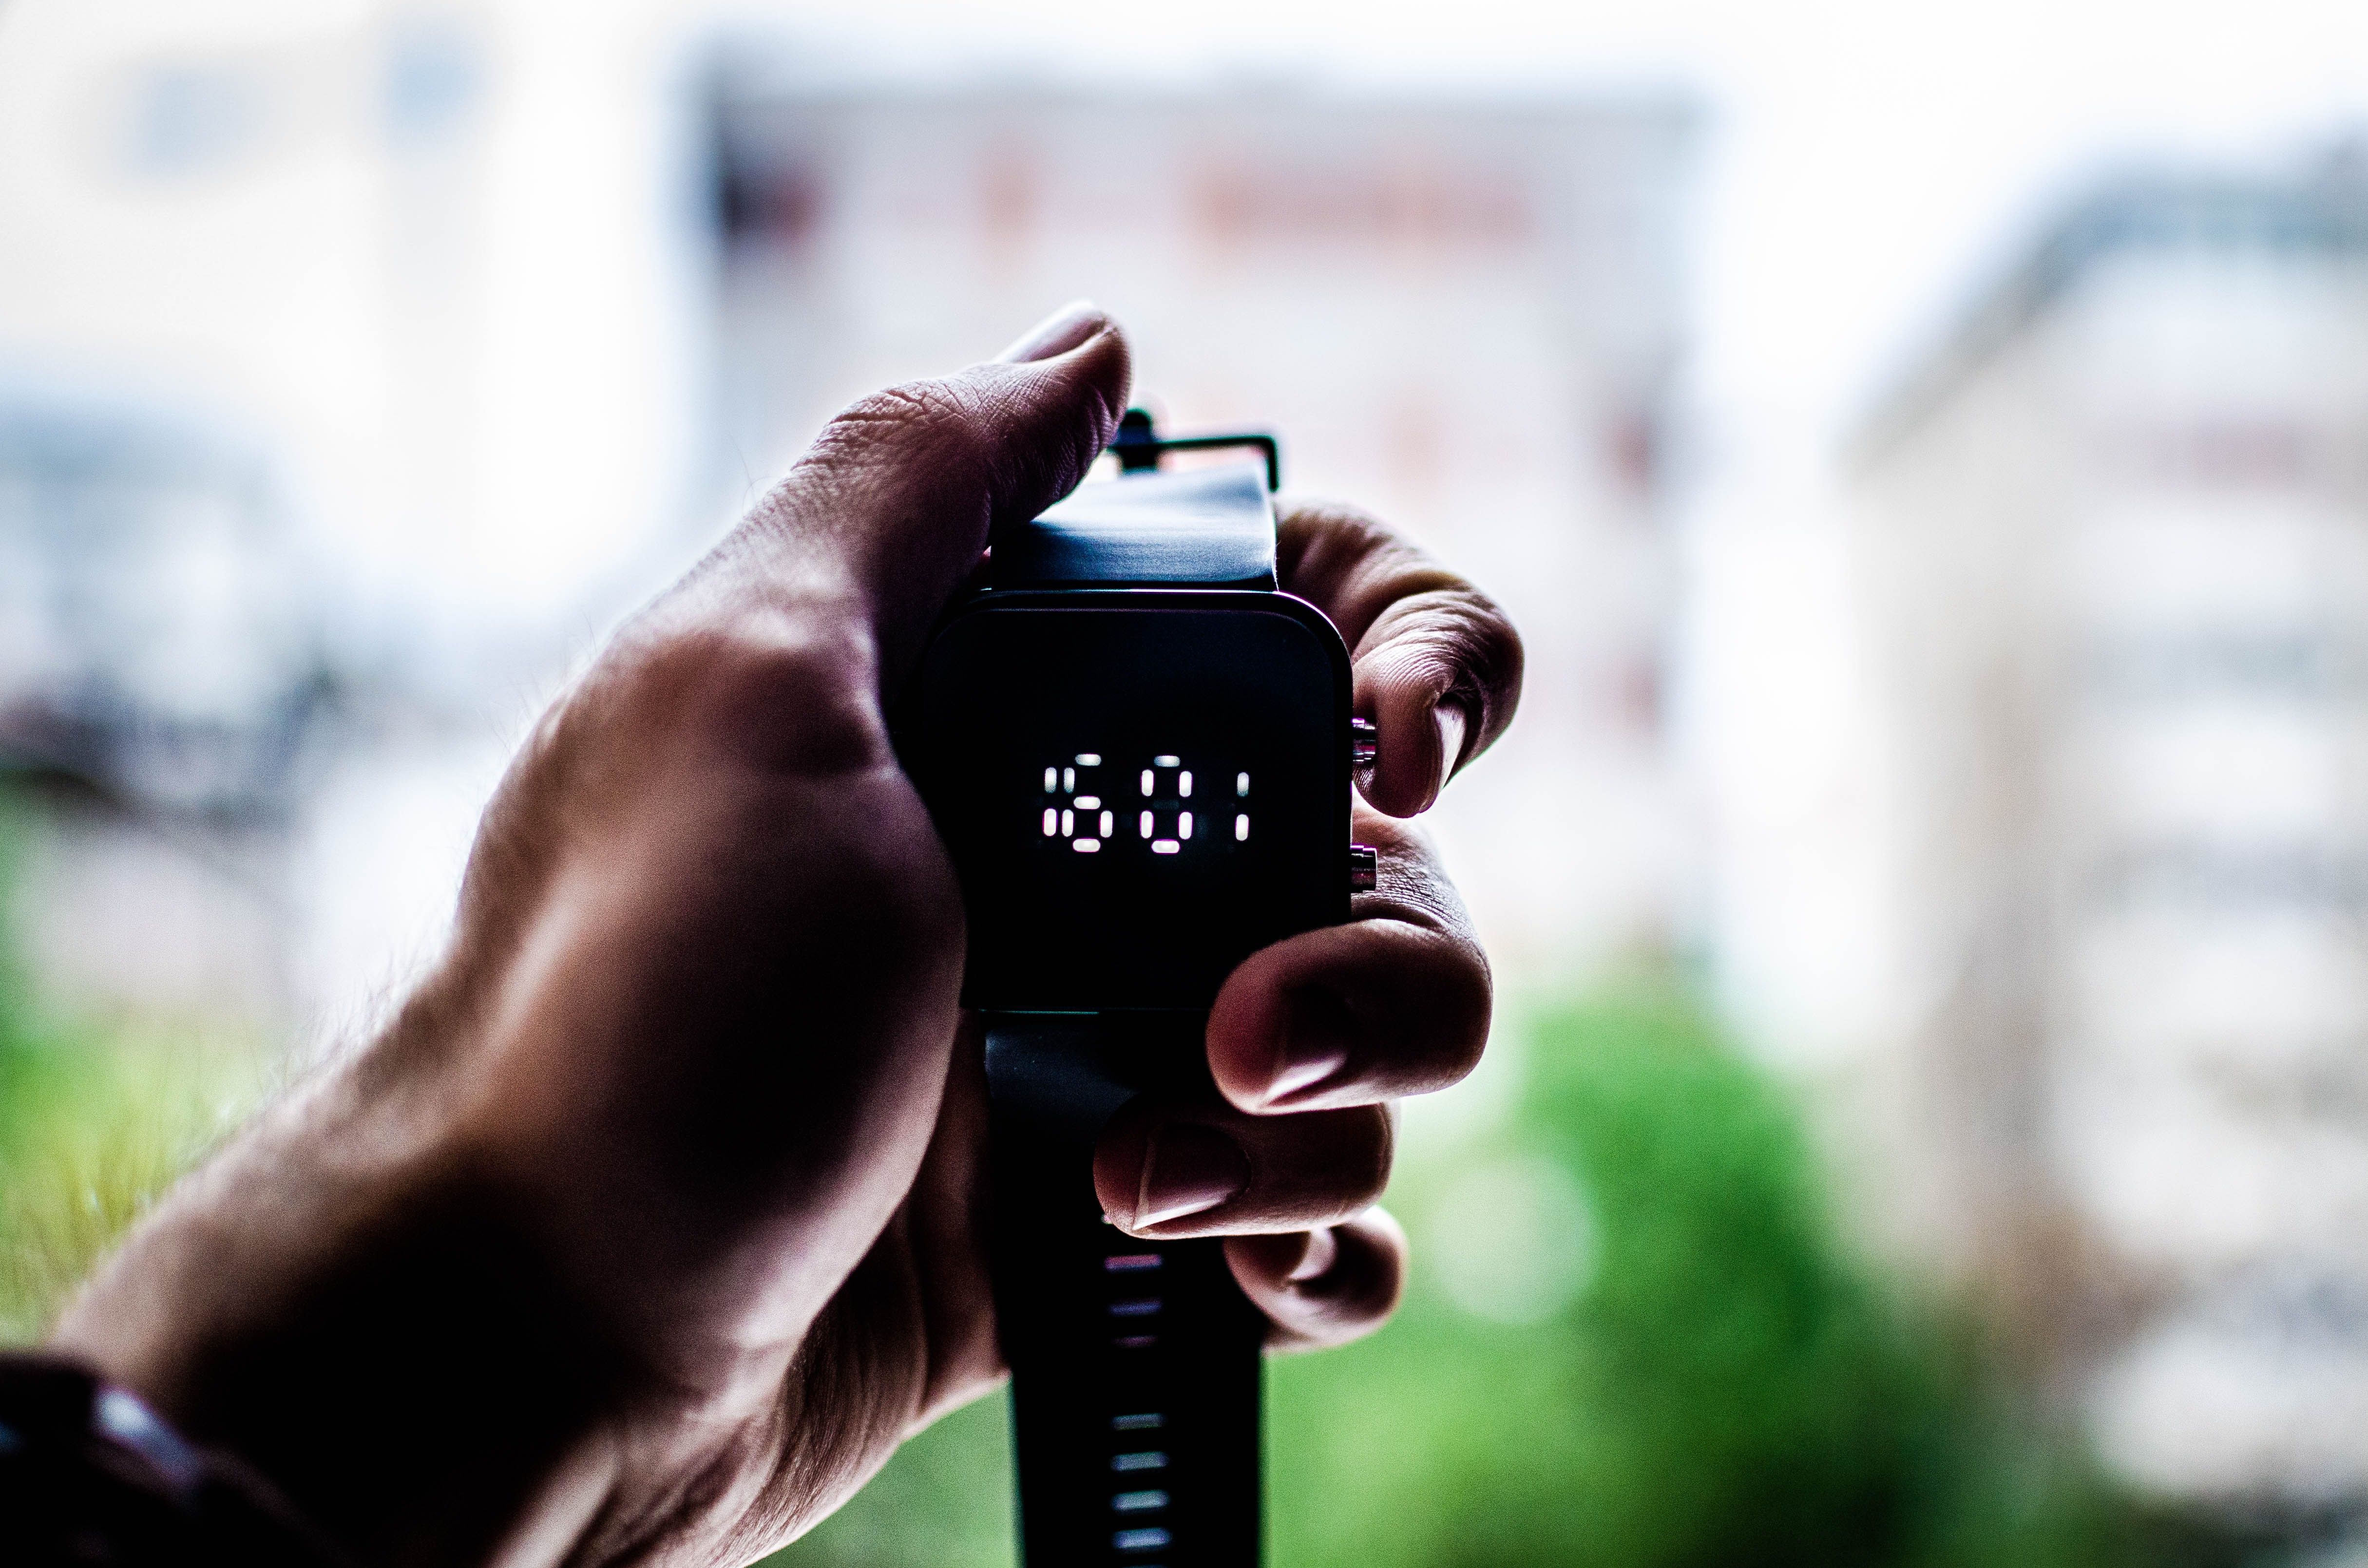 A person's hand holding a digital watch displaying the time